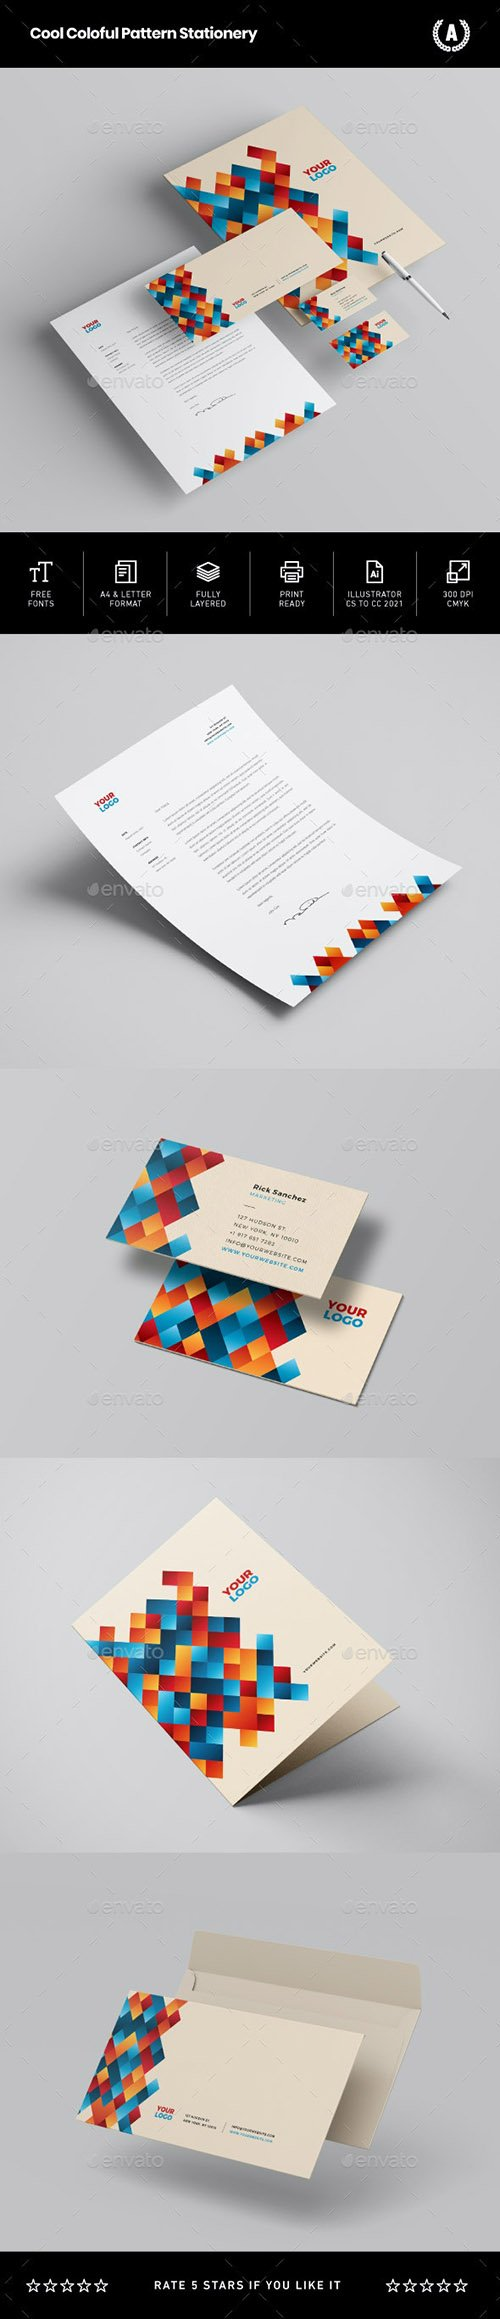 Cool Colorful Pattern Stationery 29328025